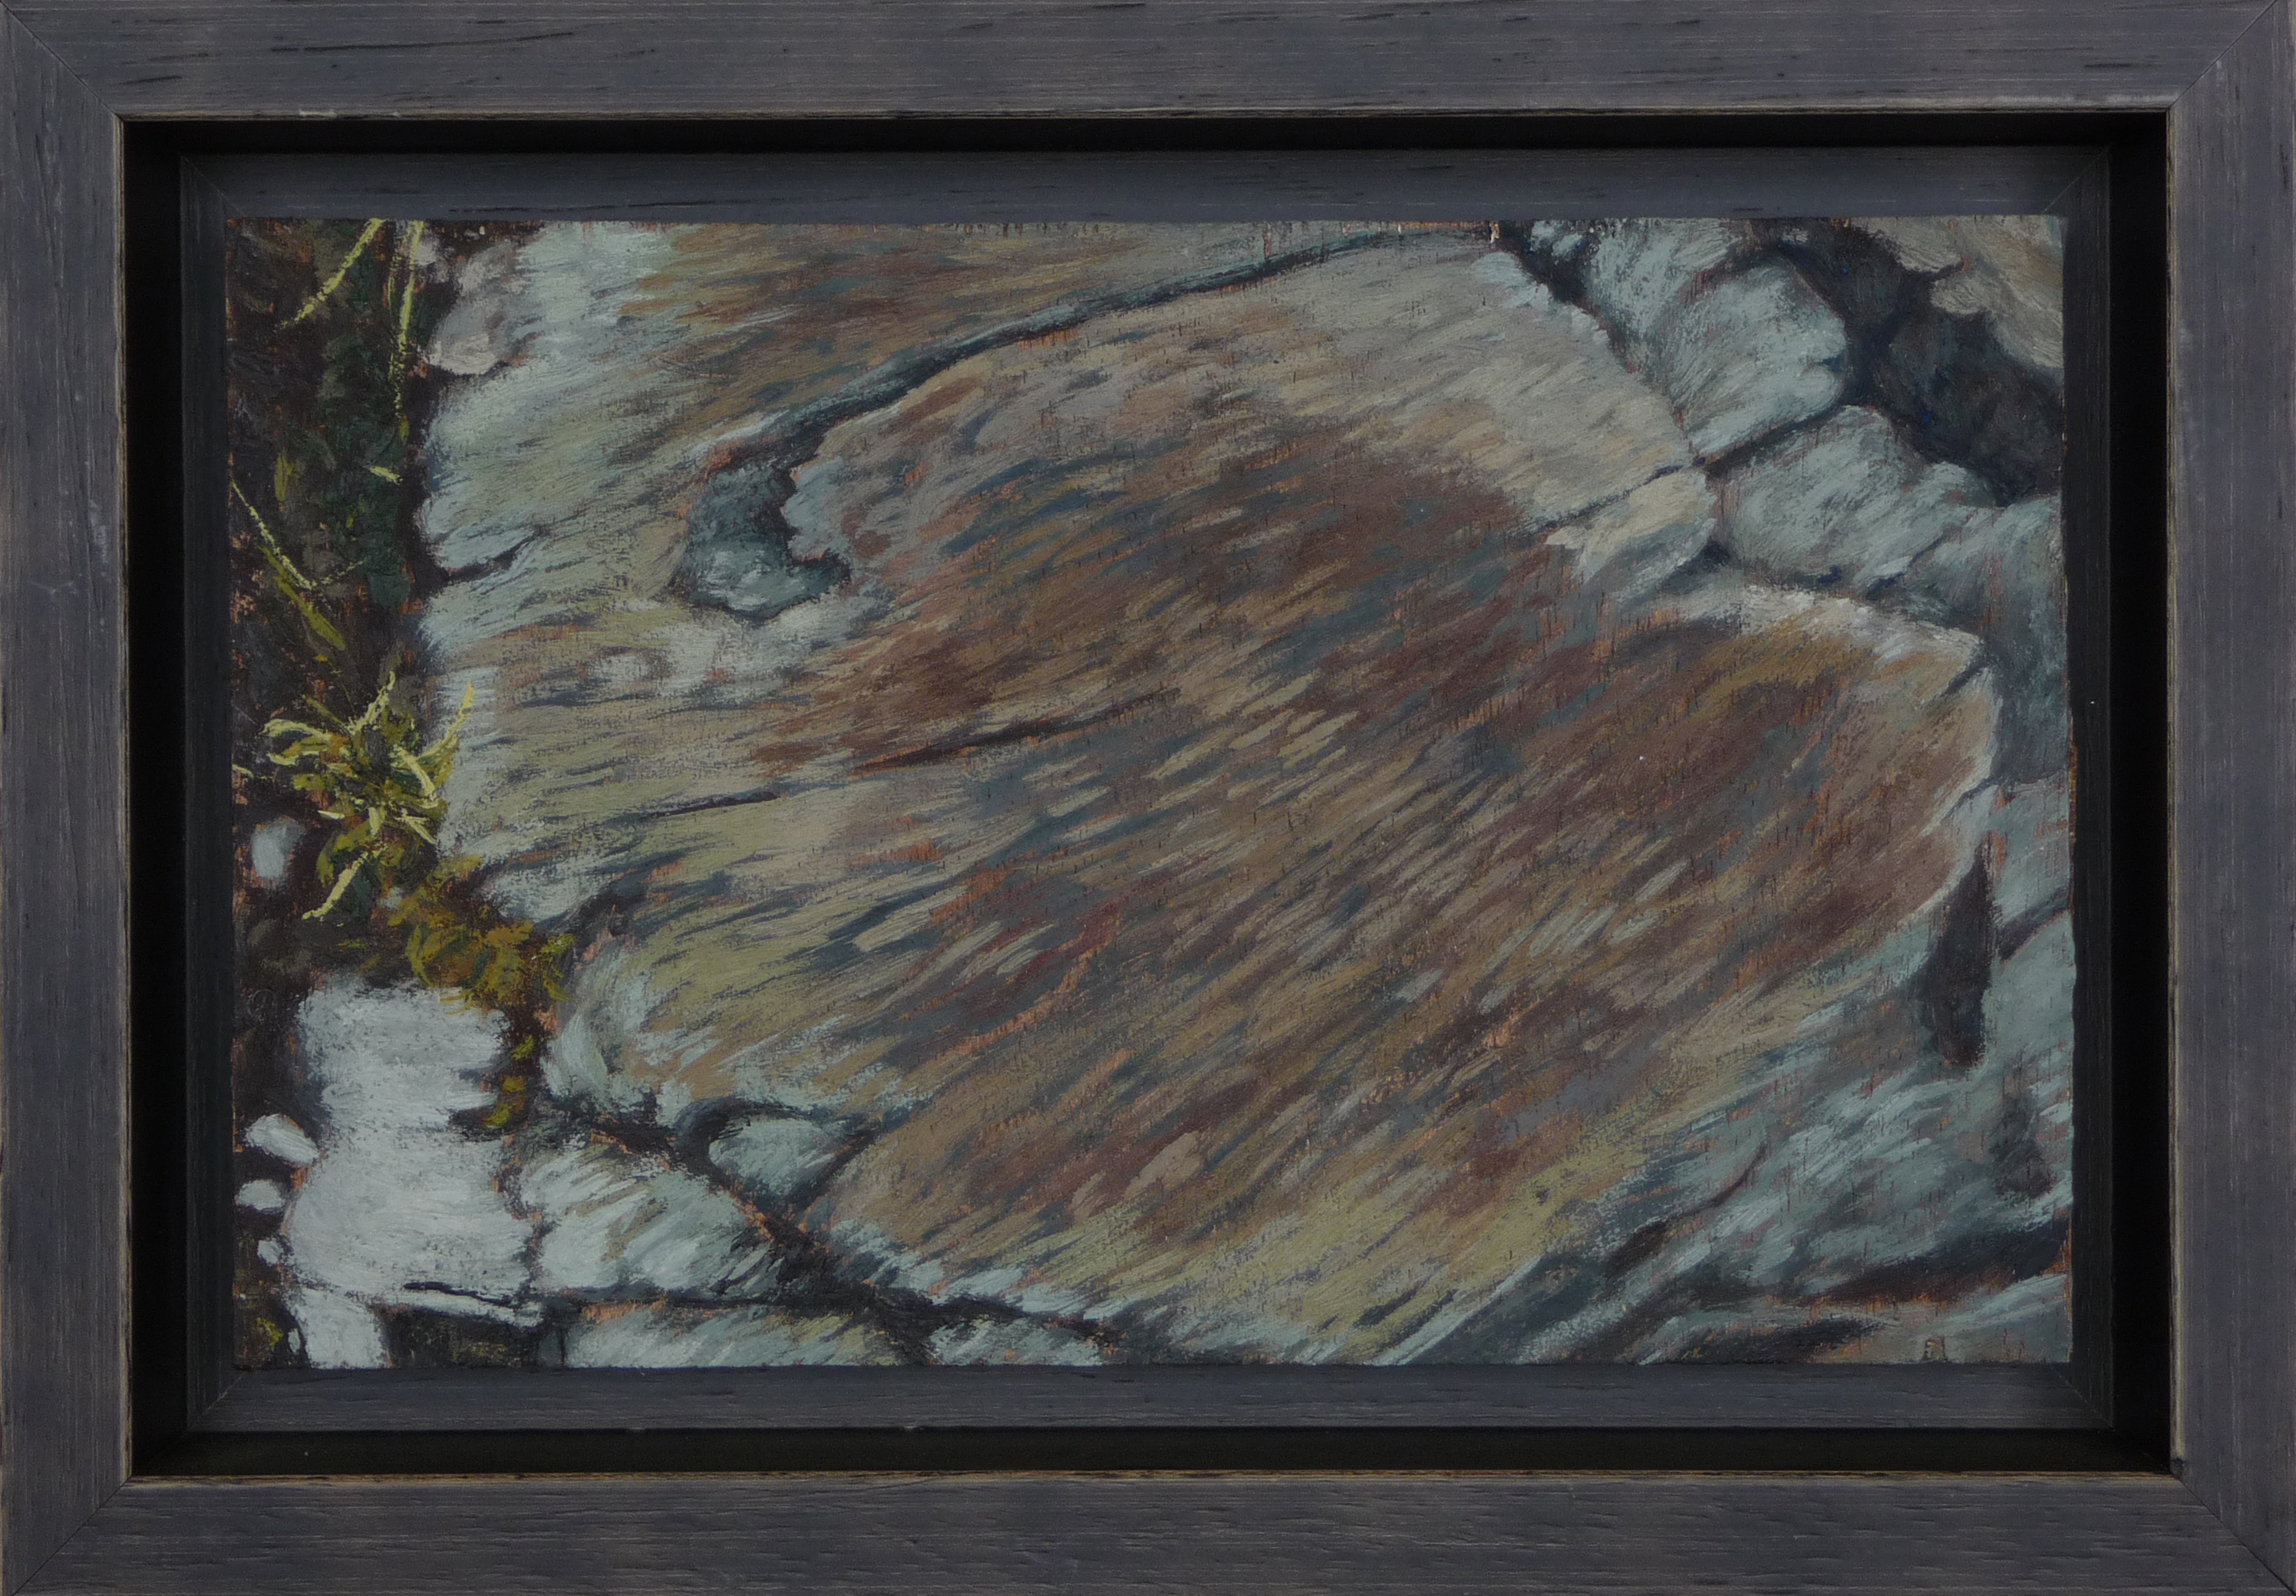 <p><strong>Stone</strong><br />Encaustic on wood, 22,5 x 14 cm<br />[ Frame included - 19 x 27 cm ]<br /><!-- [if gte mso 9]><xml>